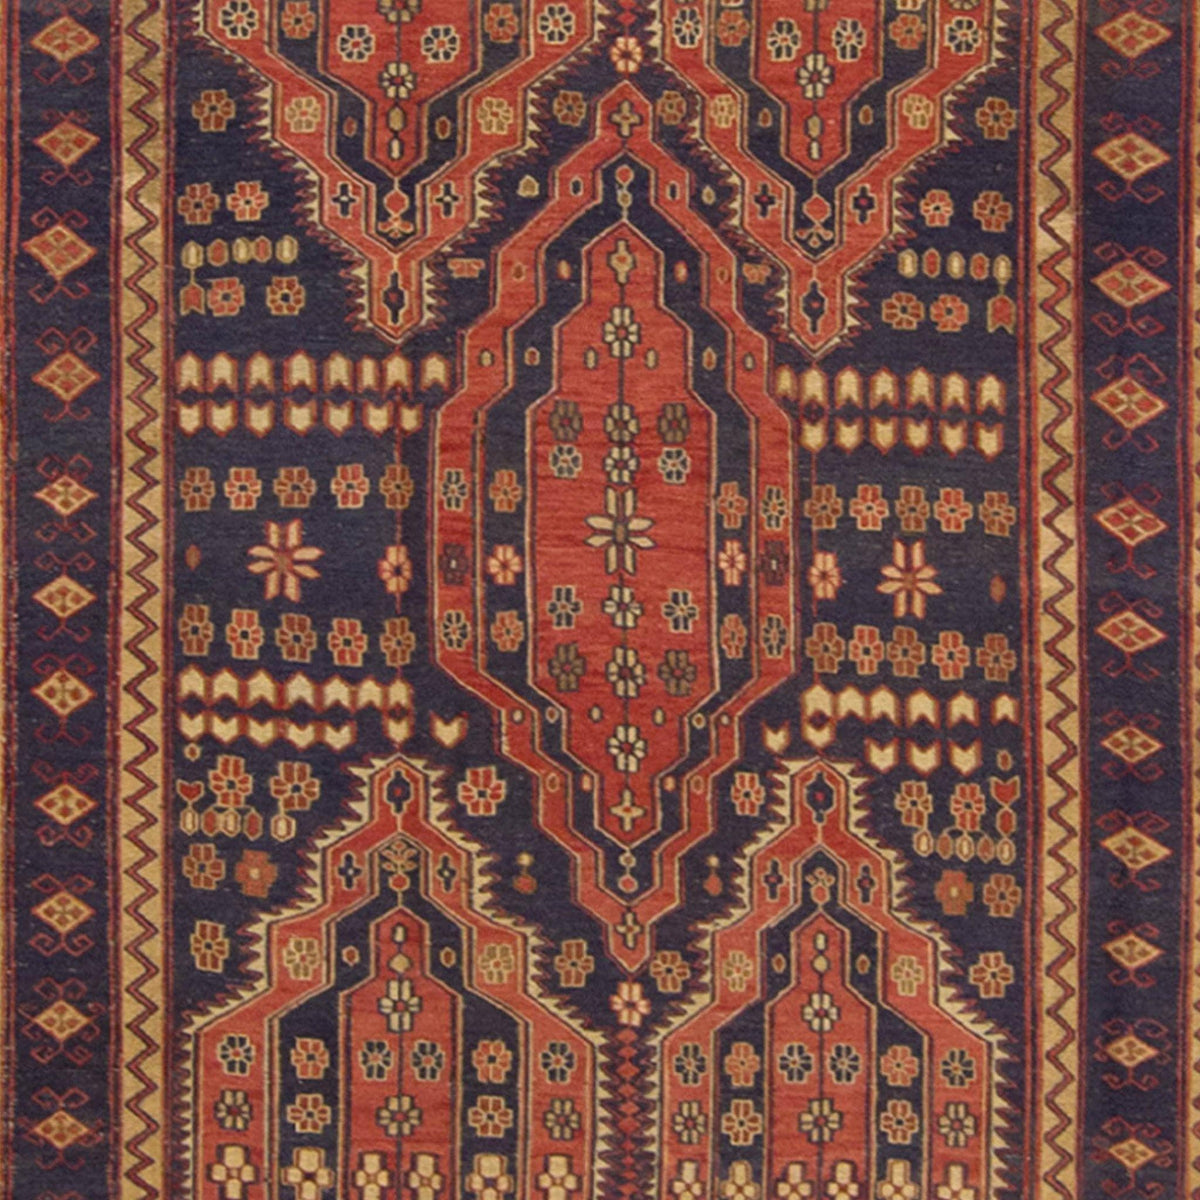 Fine Persian Kilim 147cm x 248cm Persian-Rug | House-of-Haghi | NewMarket | Auckland | NZ | Handmade Persian Rugs | Hand Knotted Persian Rugs